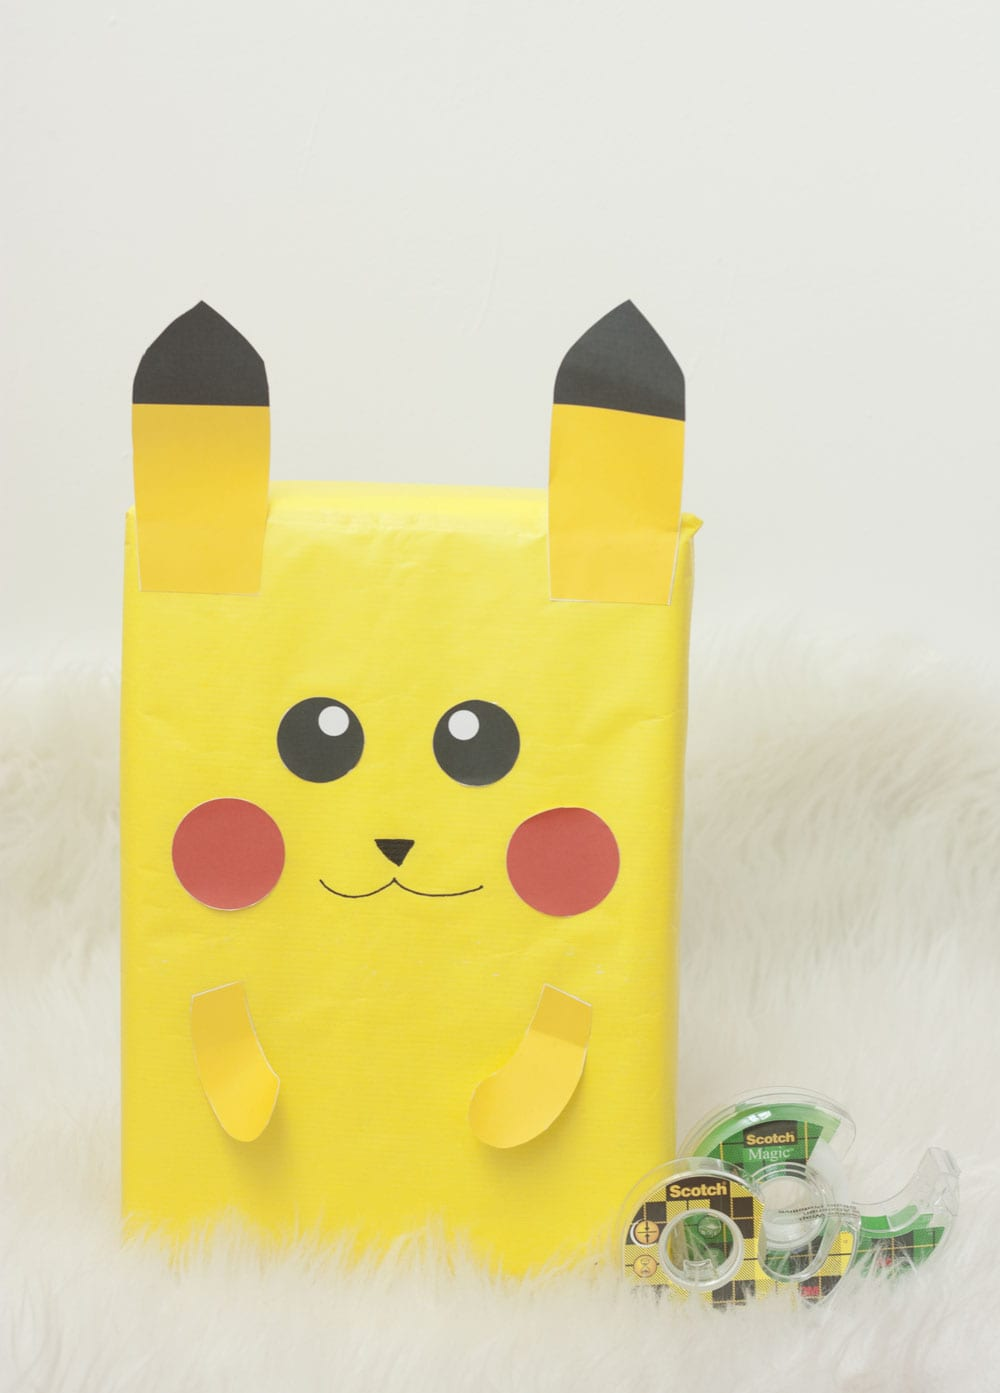 finish-pikachu-scotch